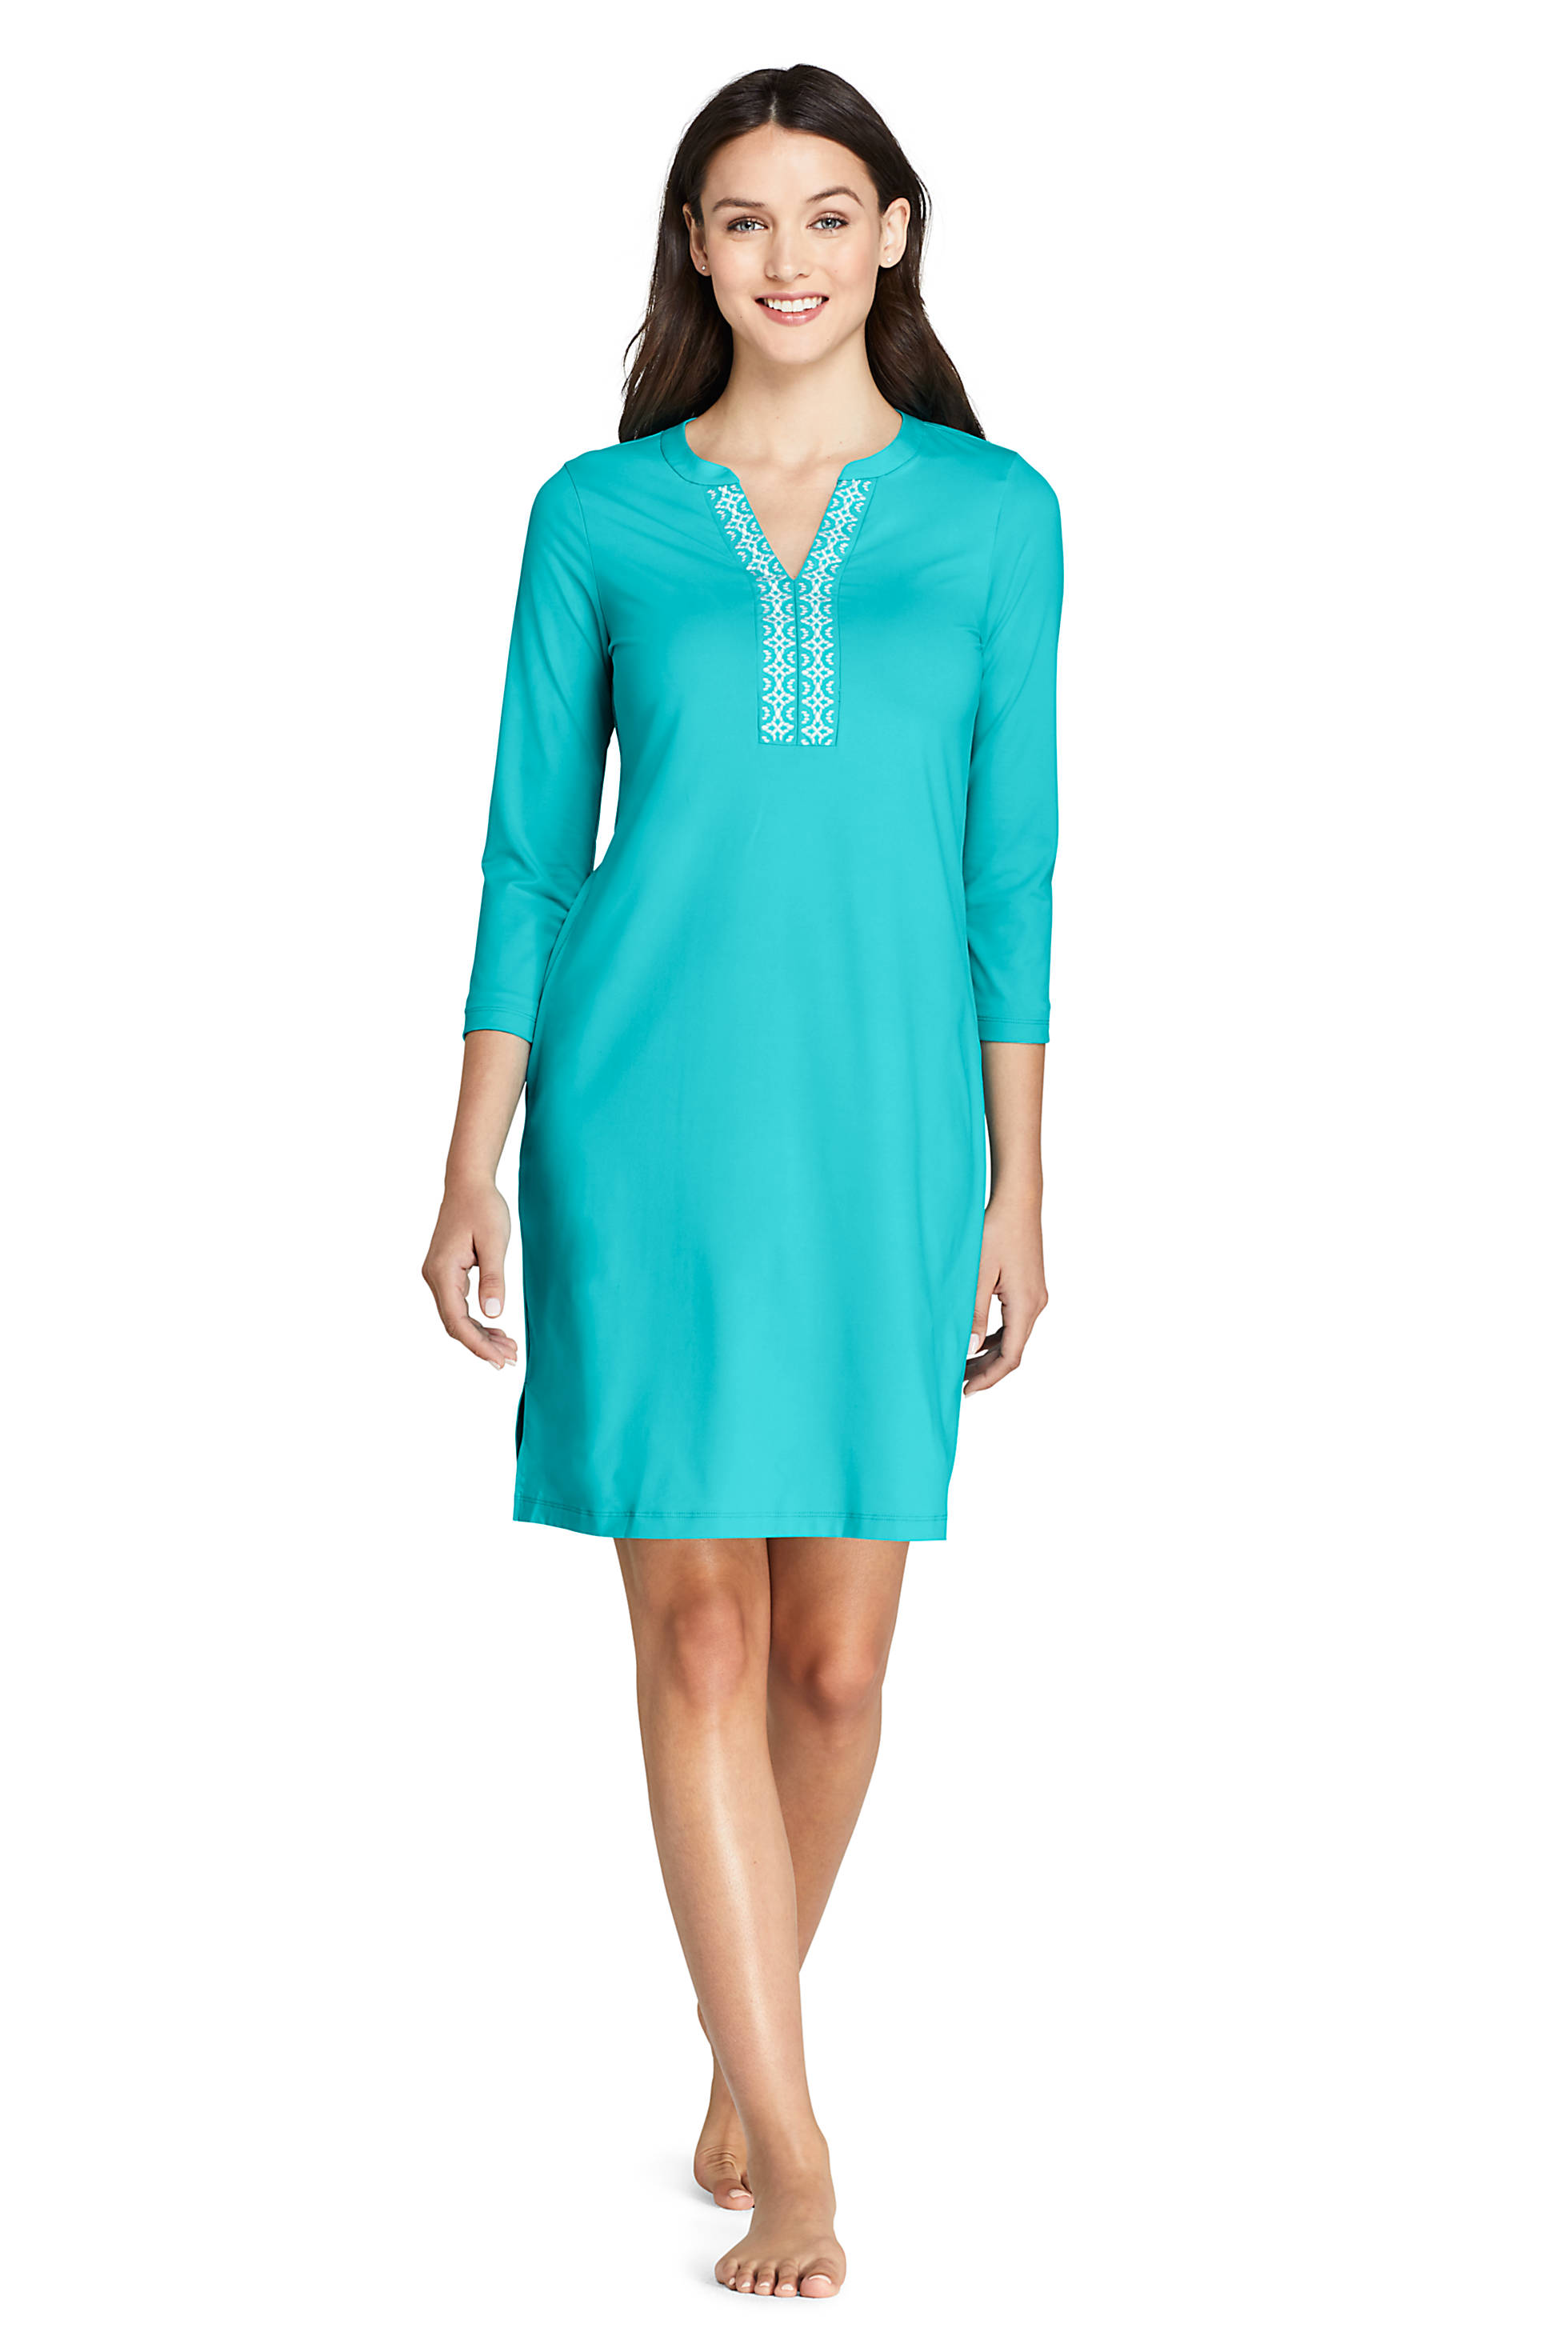 V-Neck 3/4 Sleeve UV Protection Embroidered Cover-Up Dress